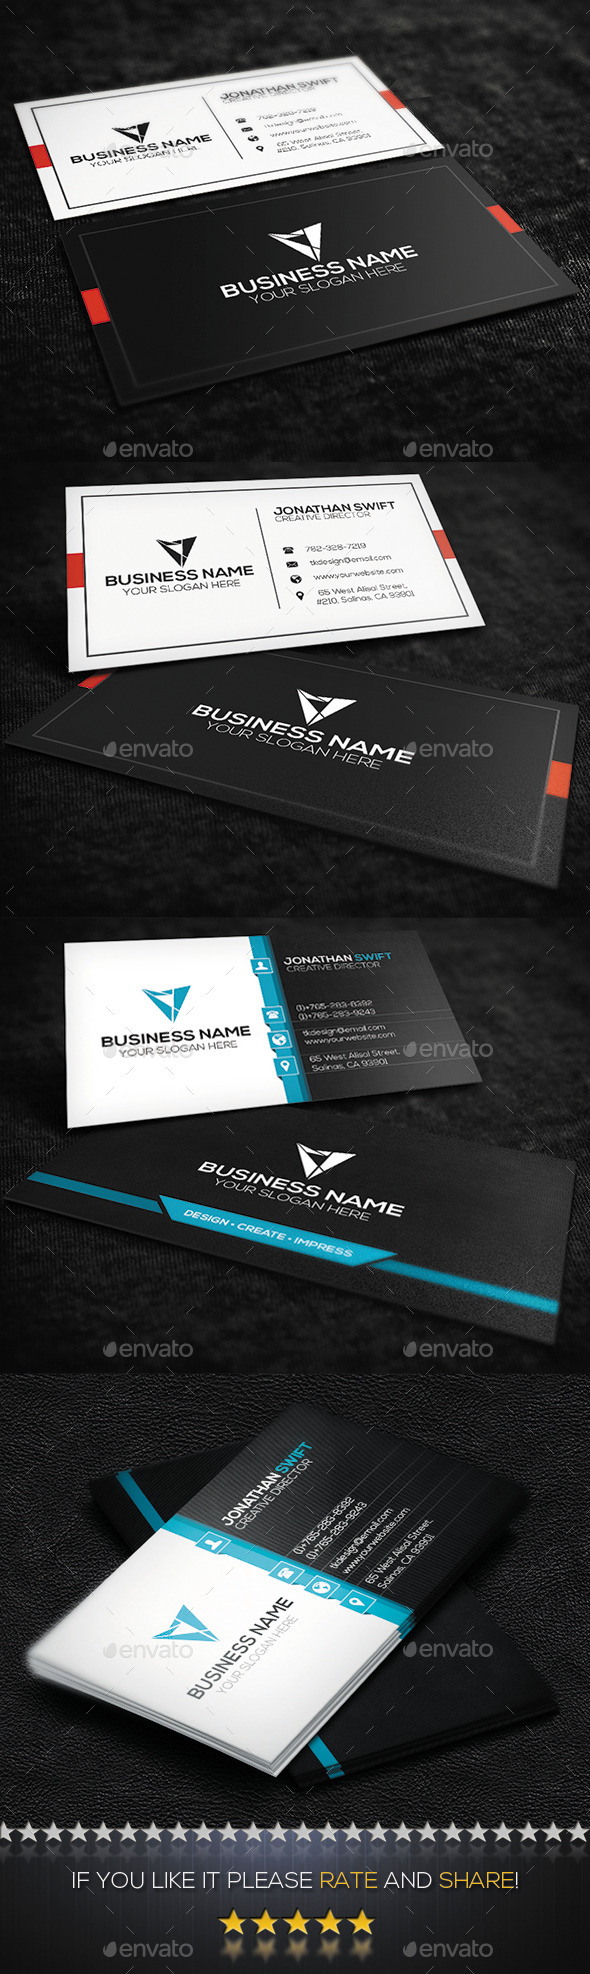 2 in 1 Corporate Business Card Bundle No.04 - Corporate Business Cards